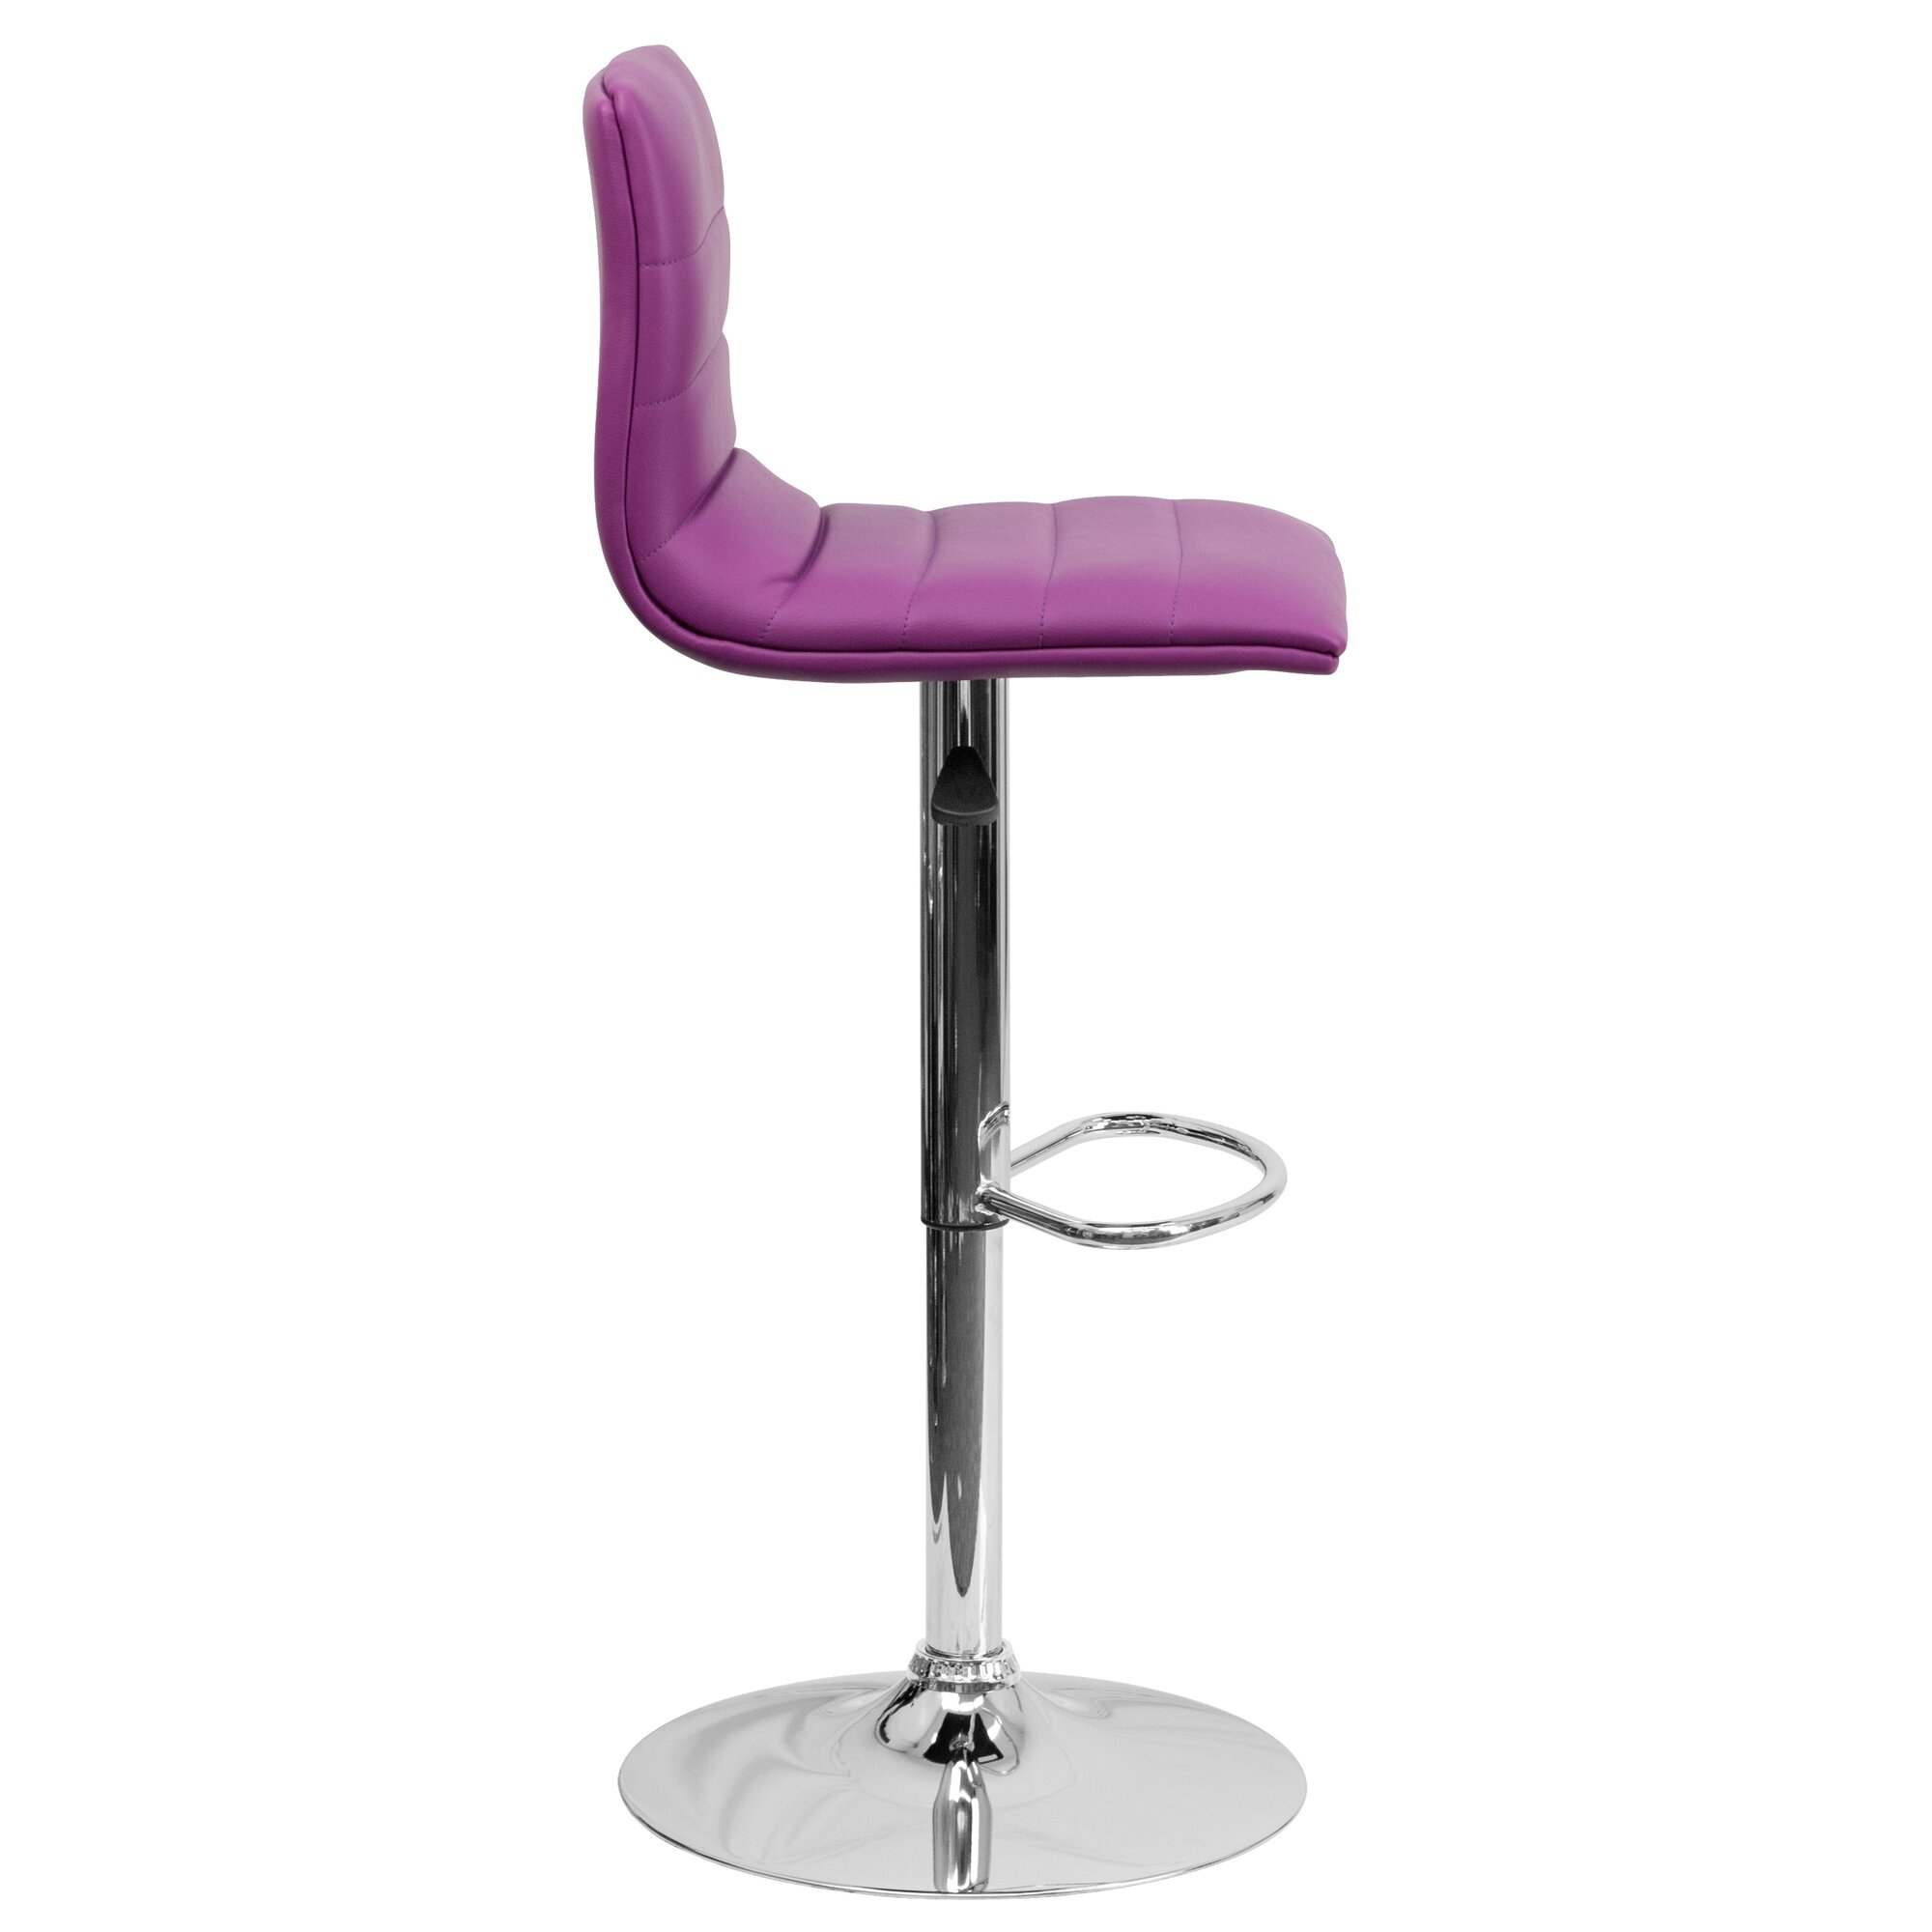 Wade Logan Clay Adjustable Height Swivel Bar Stool  : ClayAdjustableHeightSwivelBarStool from www.wayfair.com size 2000 x 2000 jpeg 98kB